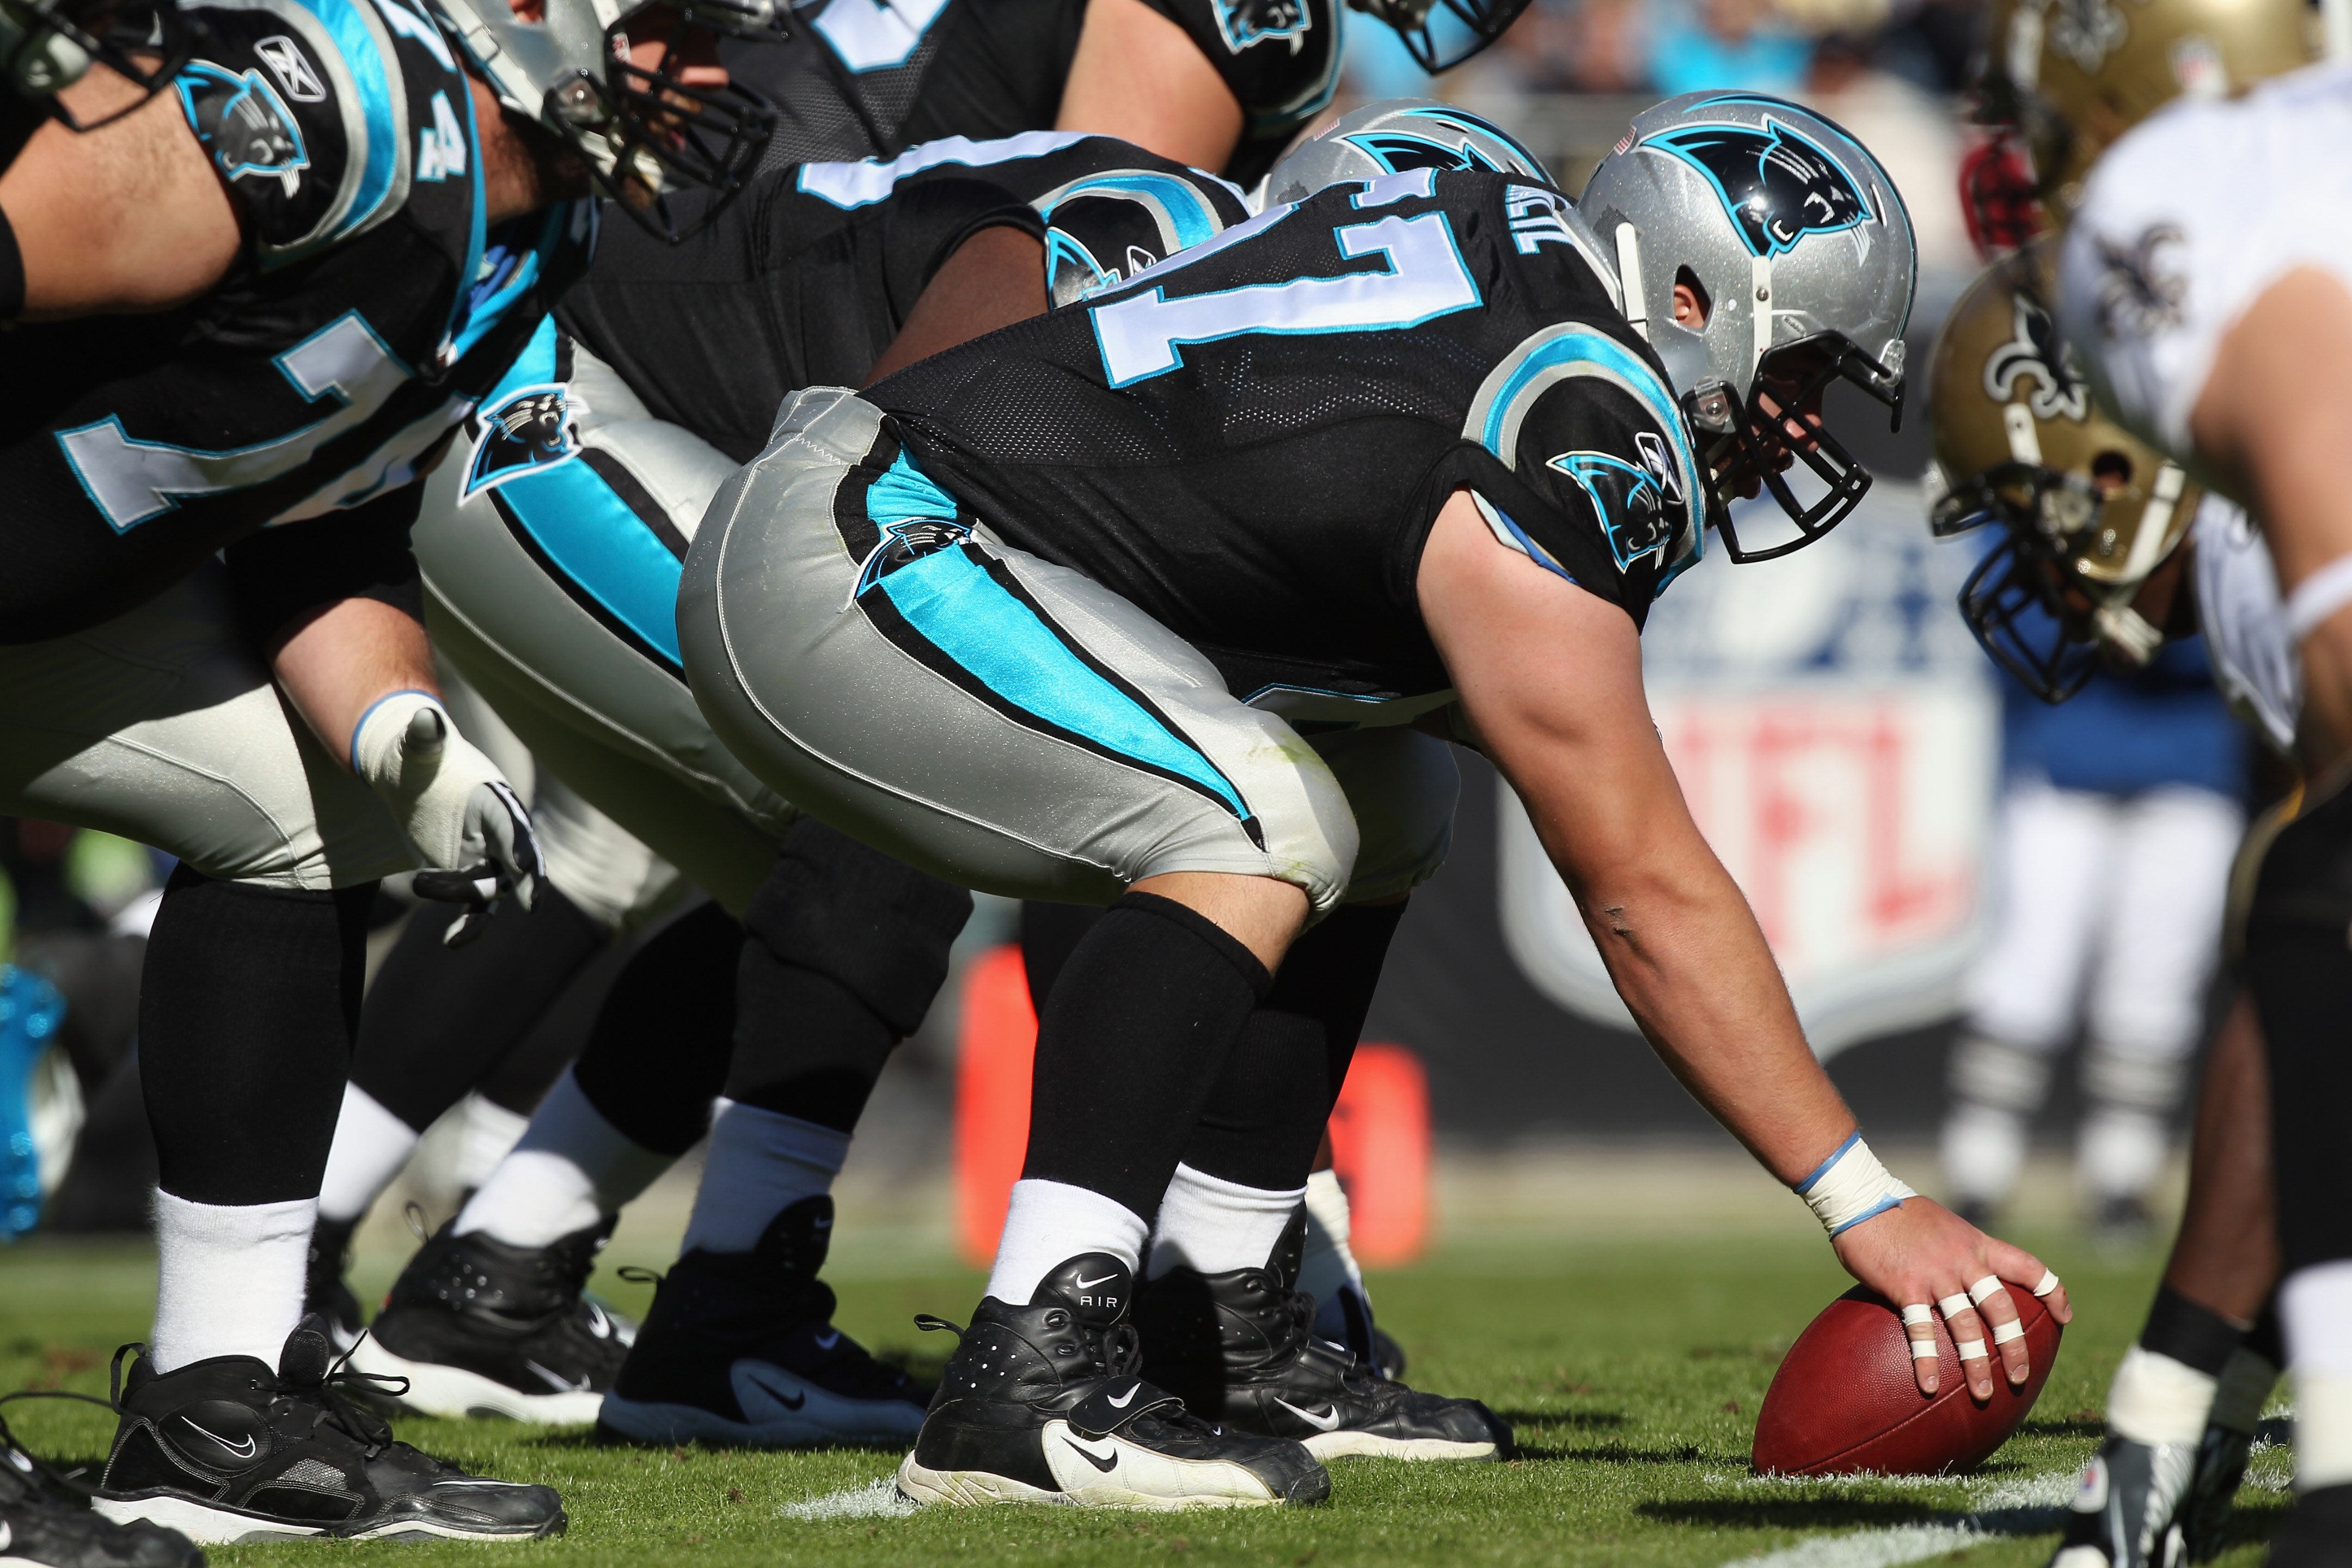 Ryan Kalil may be the best player on a bad Panthers' team.